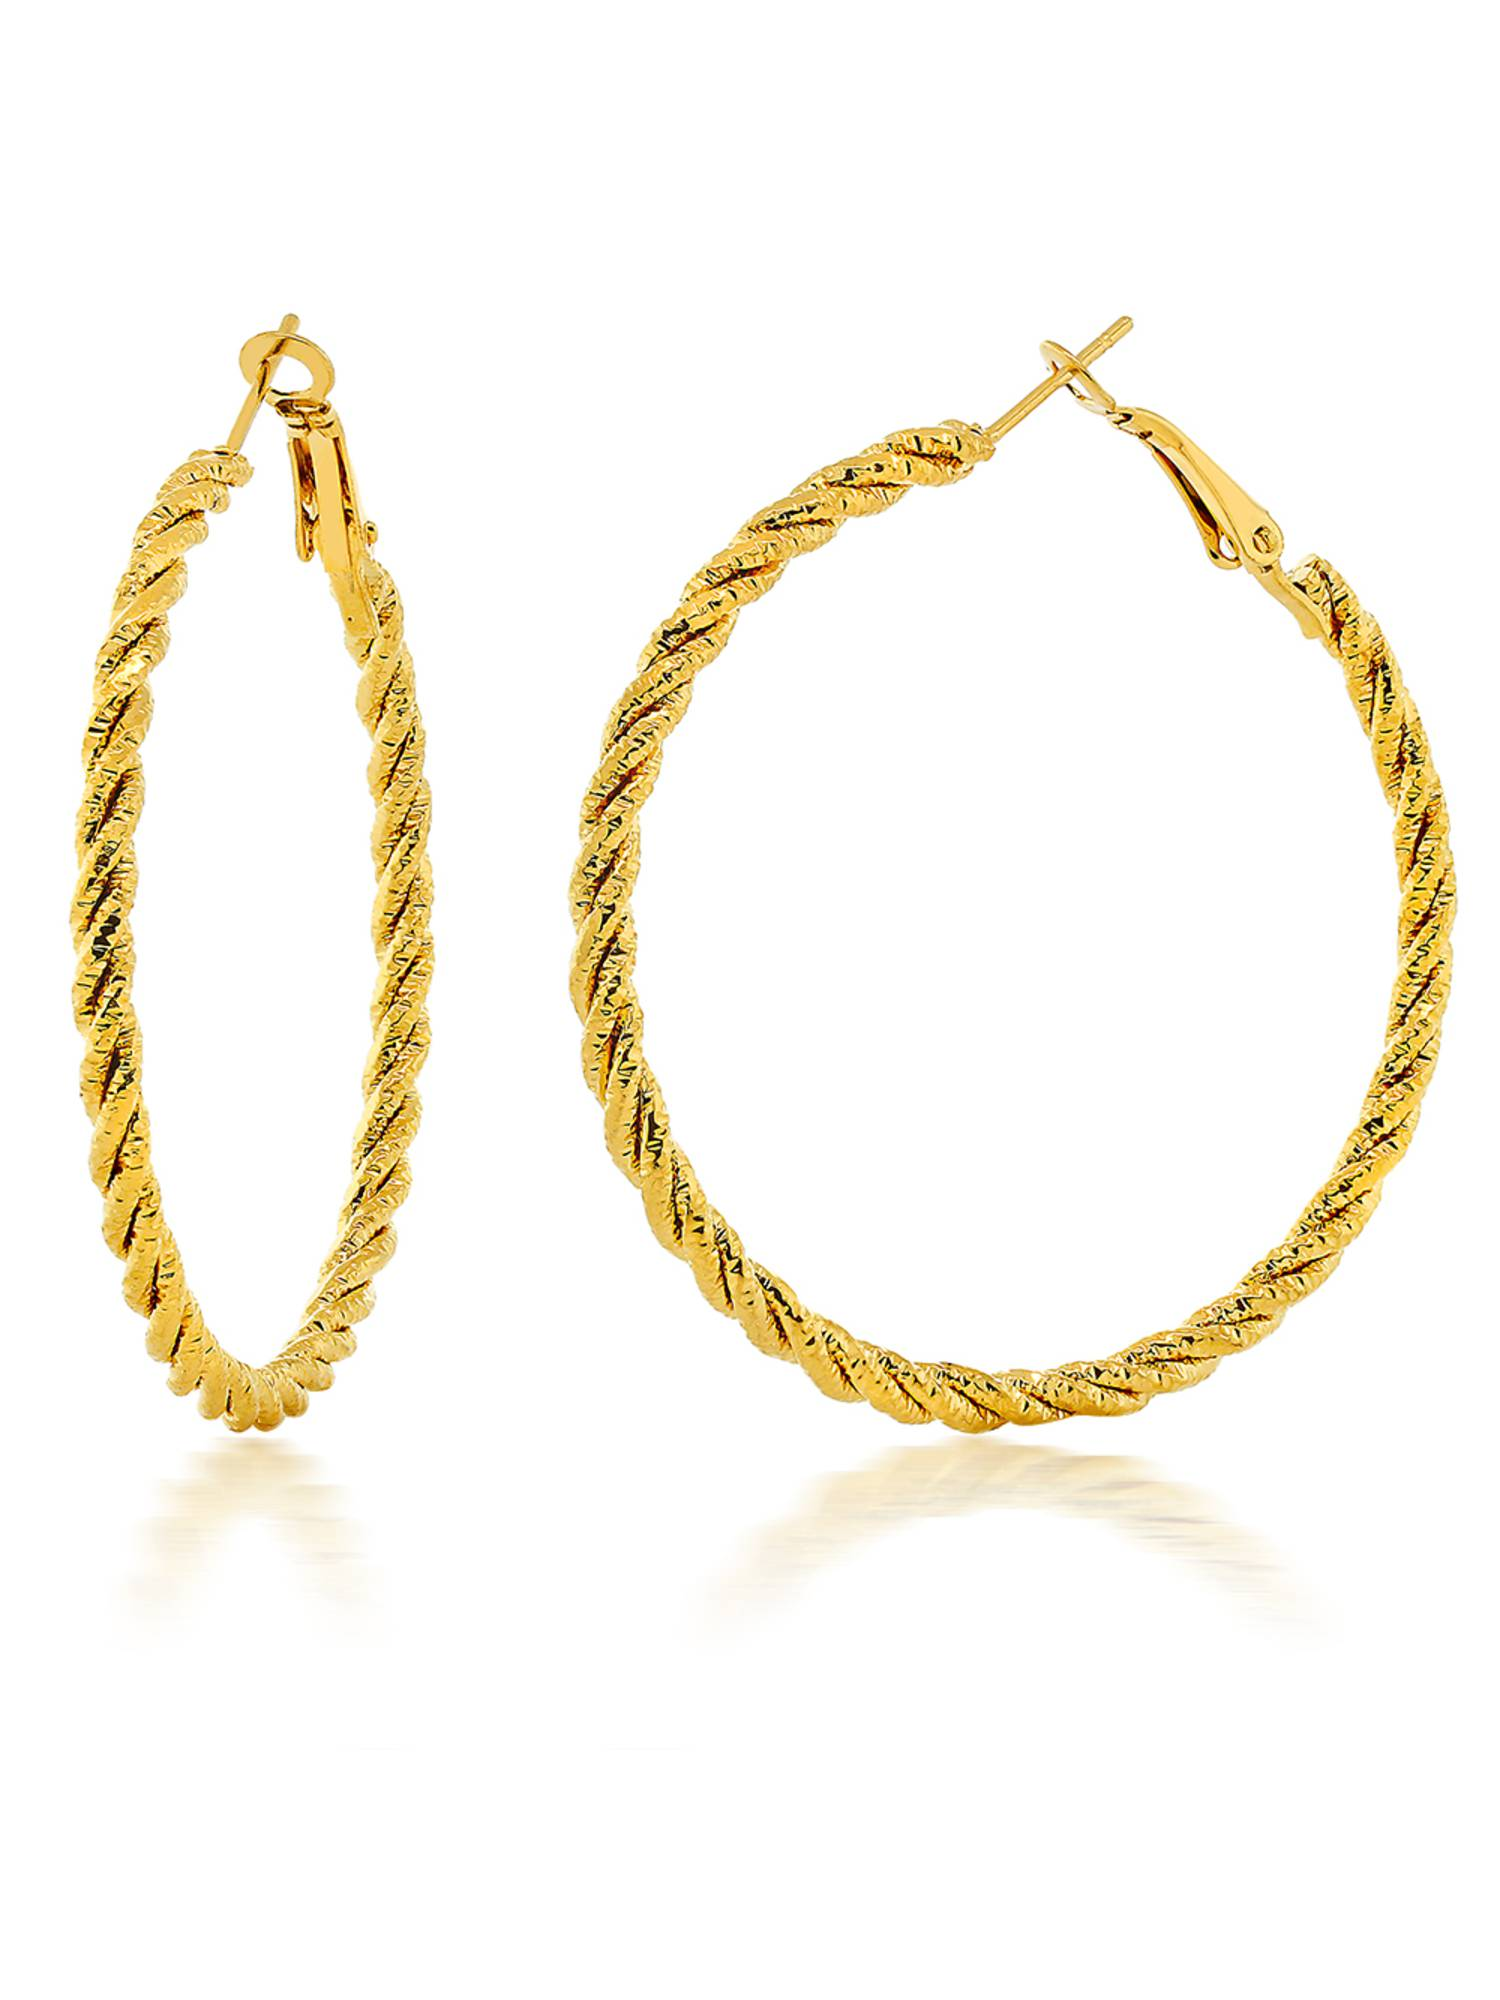 2 Inch Large Twisted Hoop Yellow Gold Plated Earrings